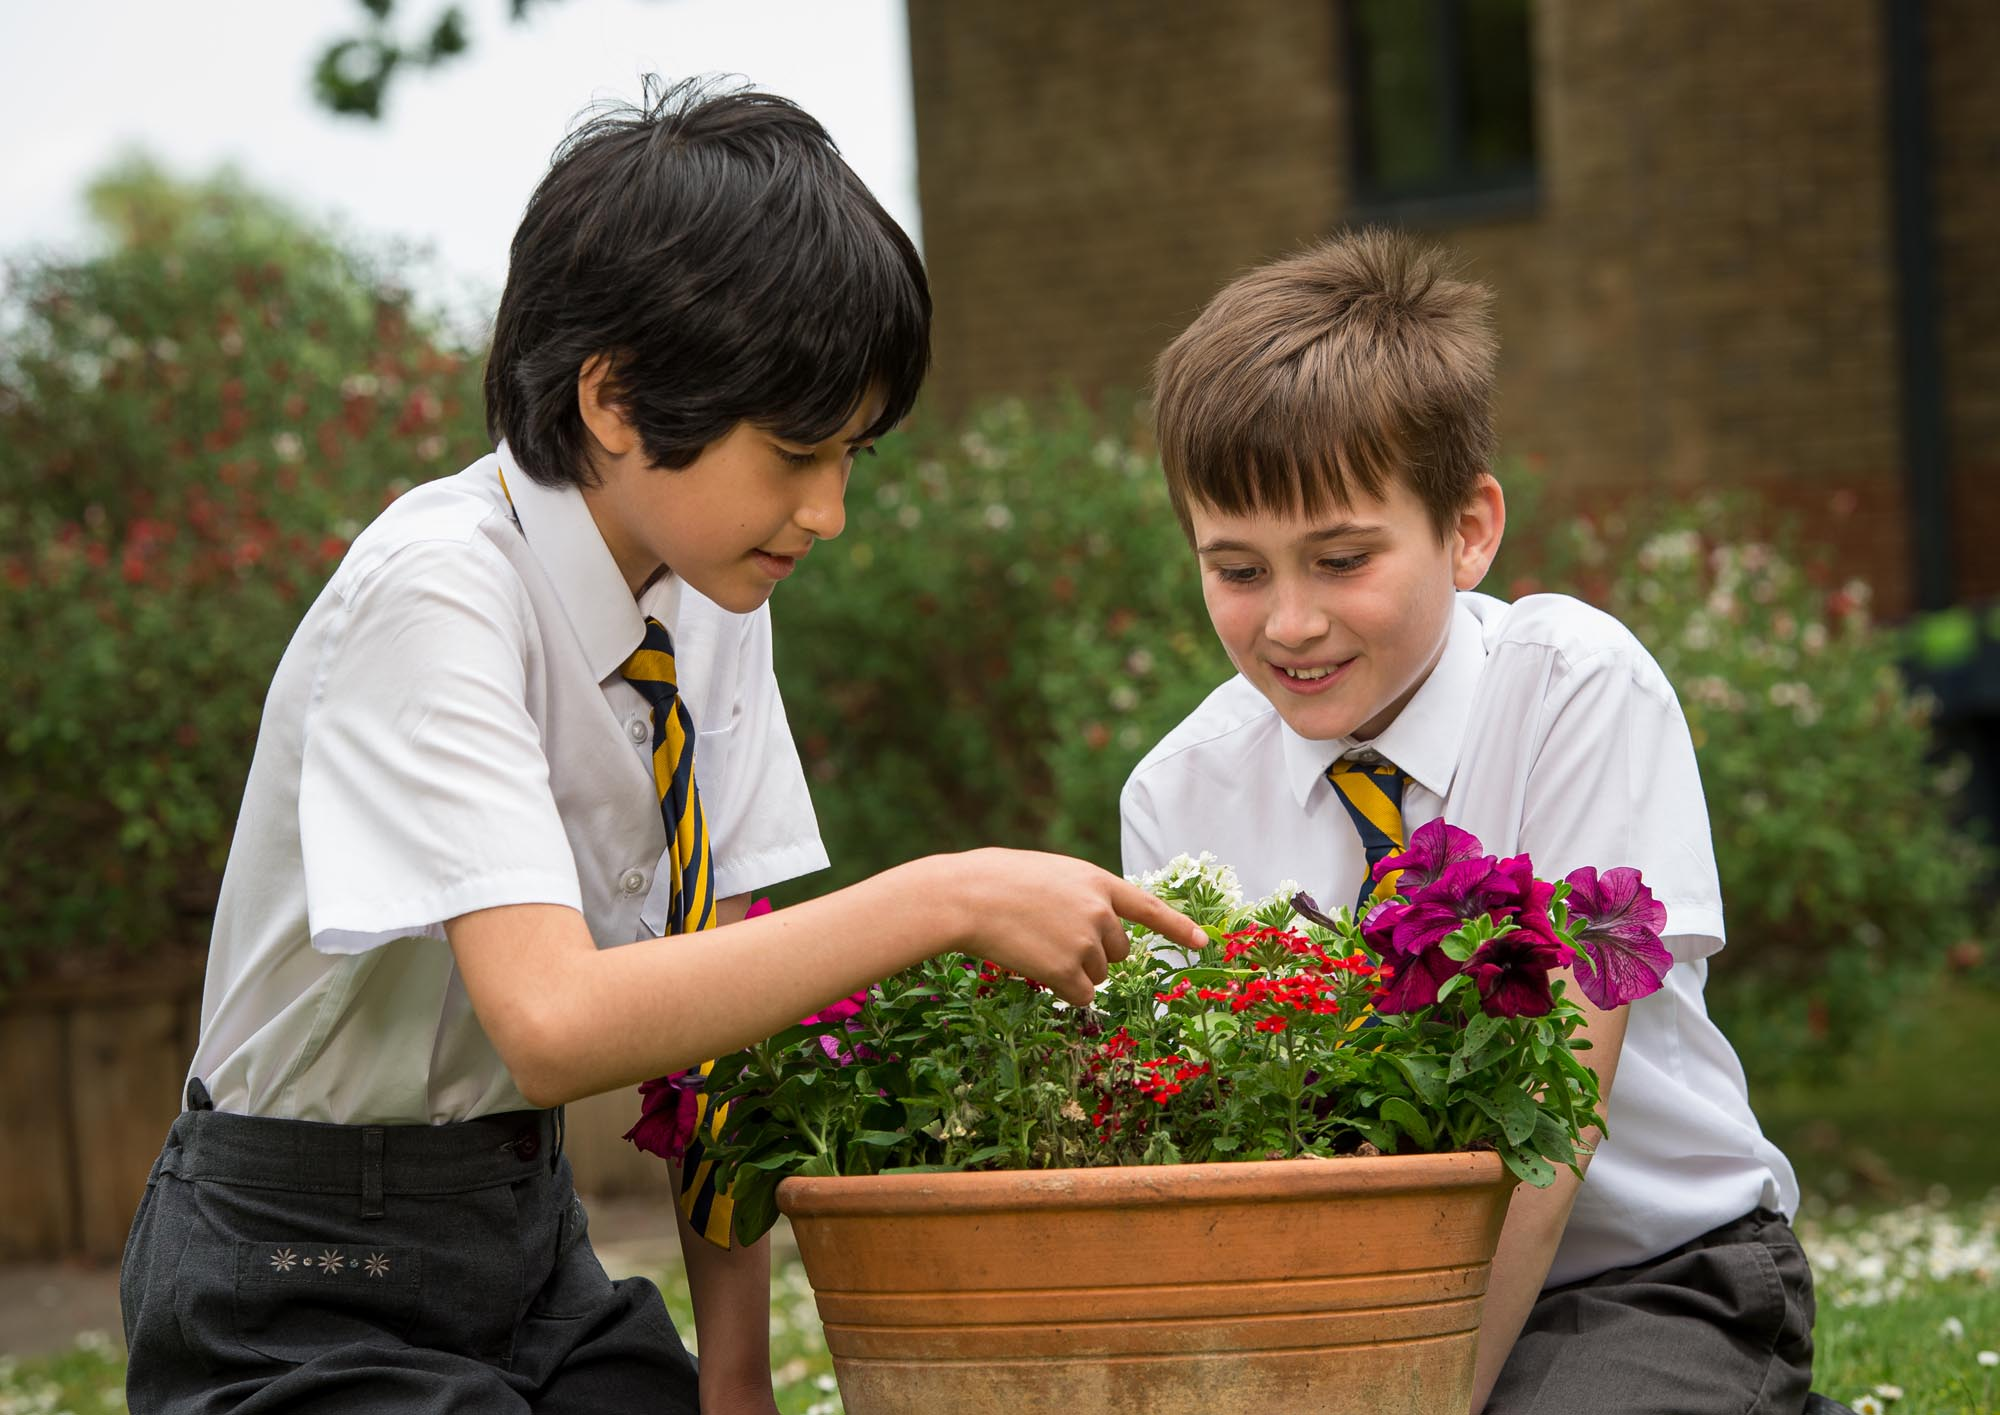 Two boys looking at flowers in a pot